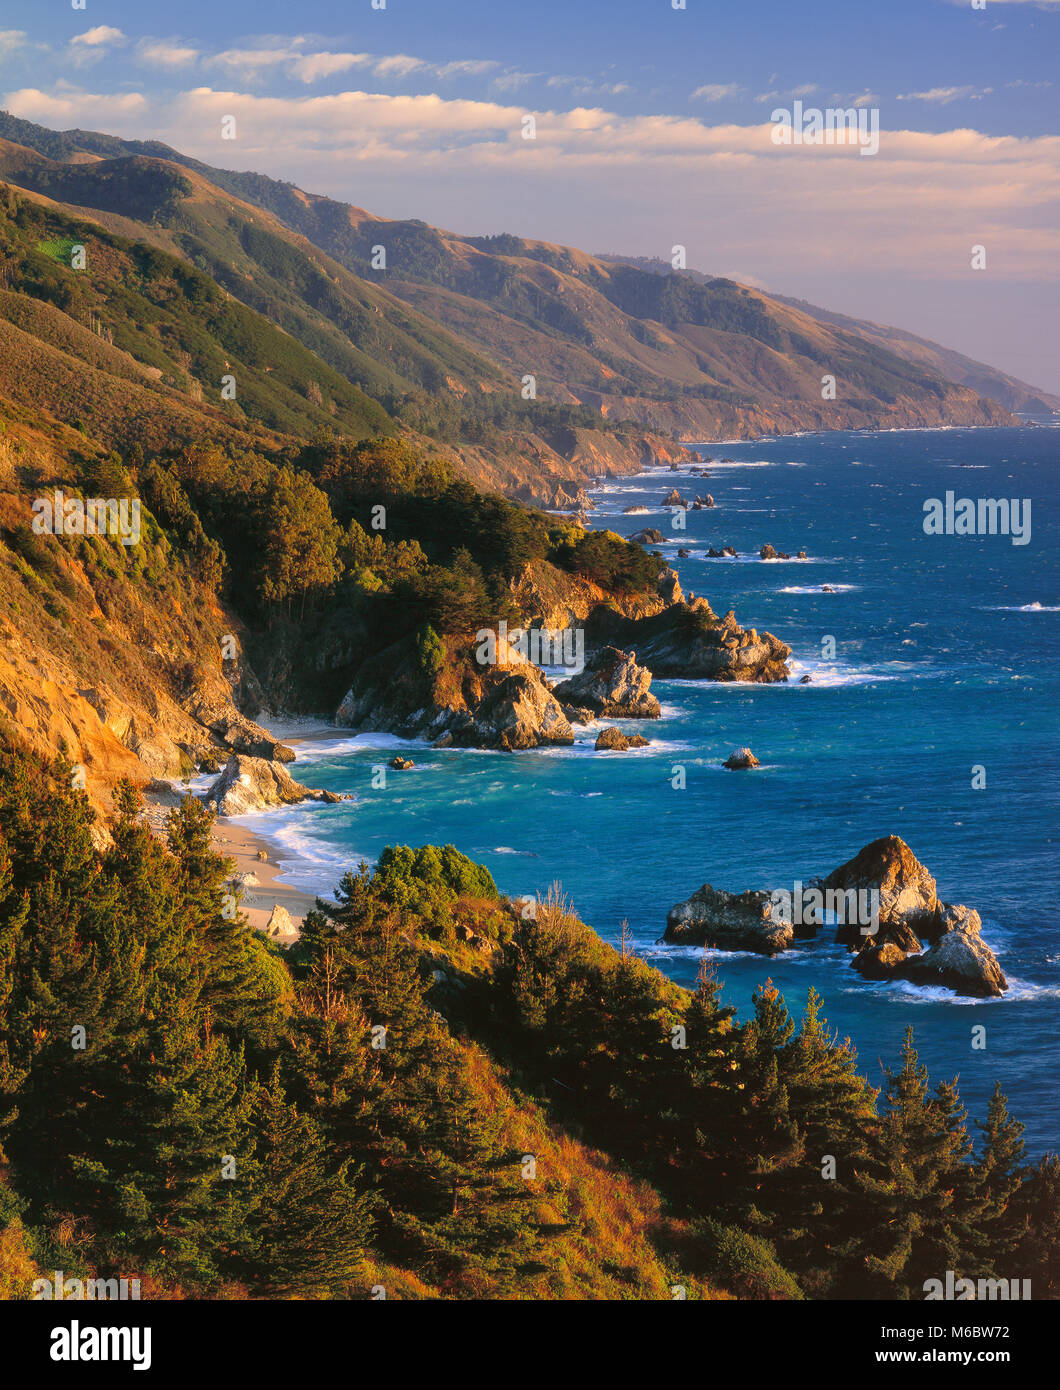 Coastline, Pfeiffer-Burns State Park, Big Sur, Monterey County, California - Stock Image